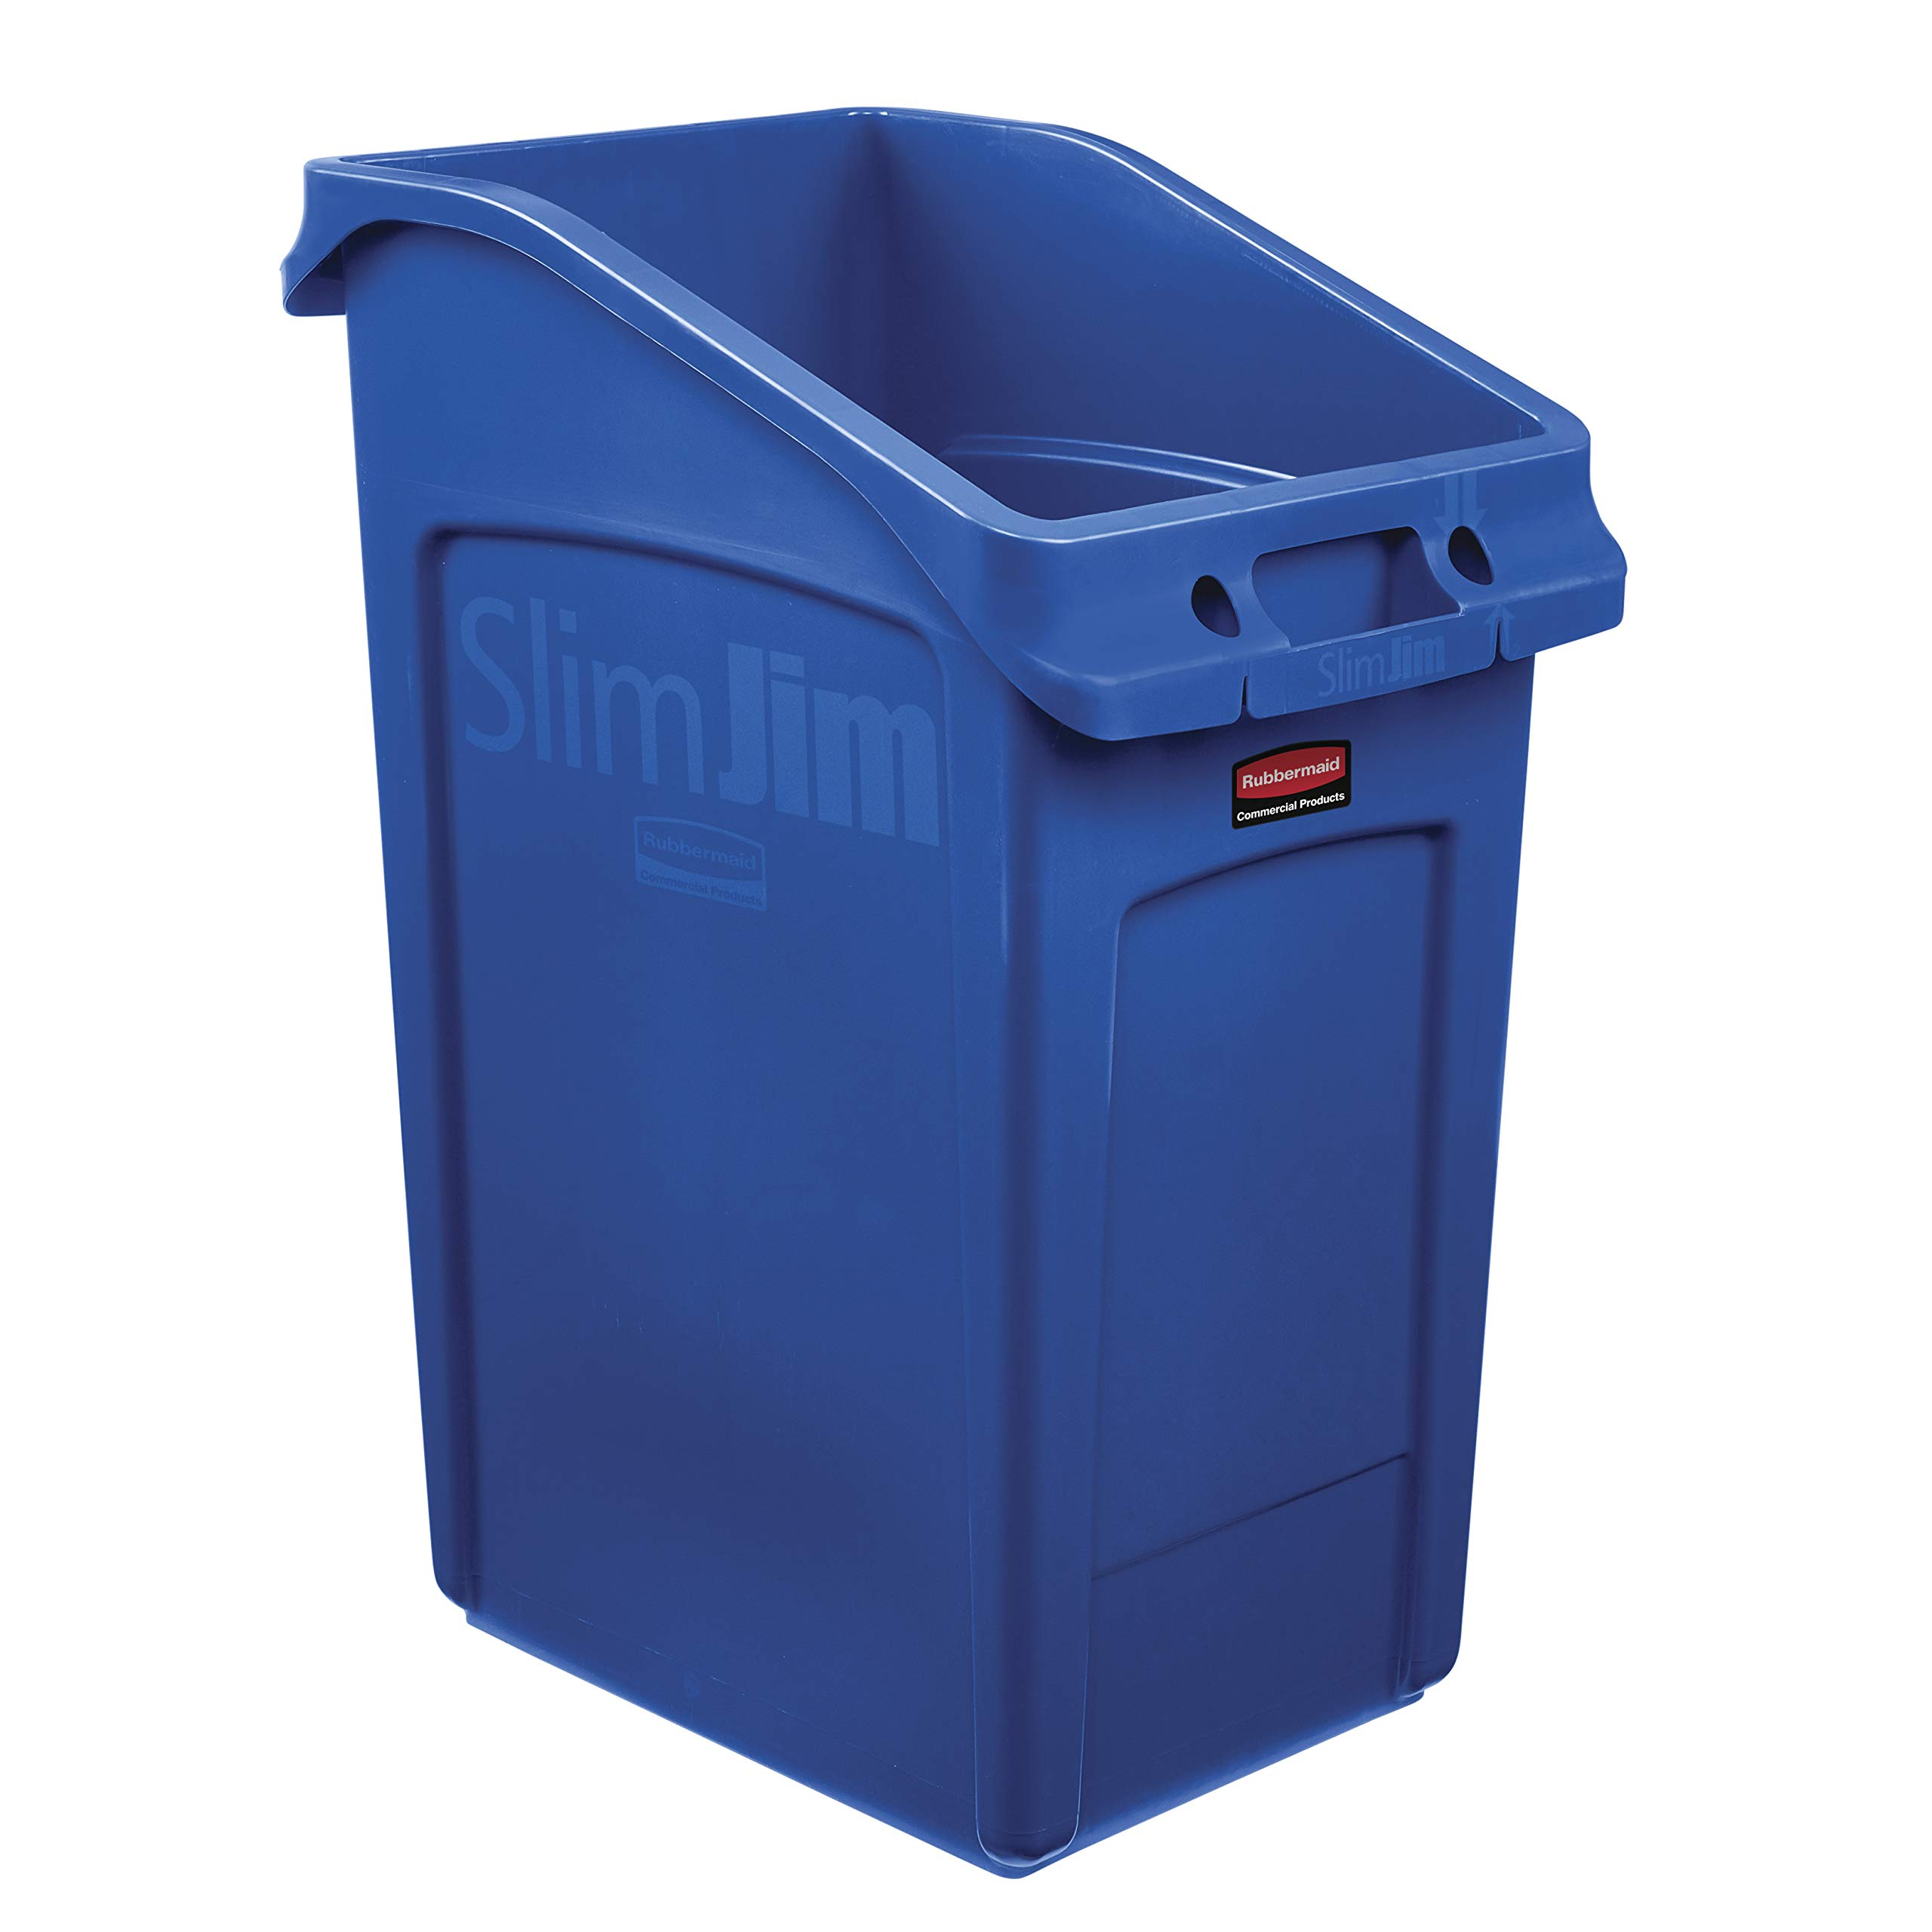 Rubbermaid Commercial Products 2026725 Slim Jim Under-Counter Trash Can with Venting Channels, 23 Gallon, Blue